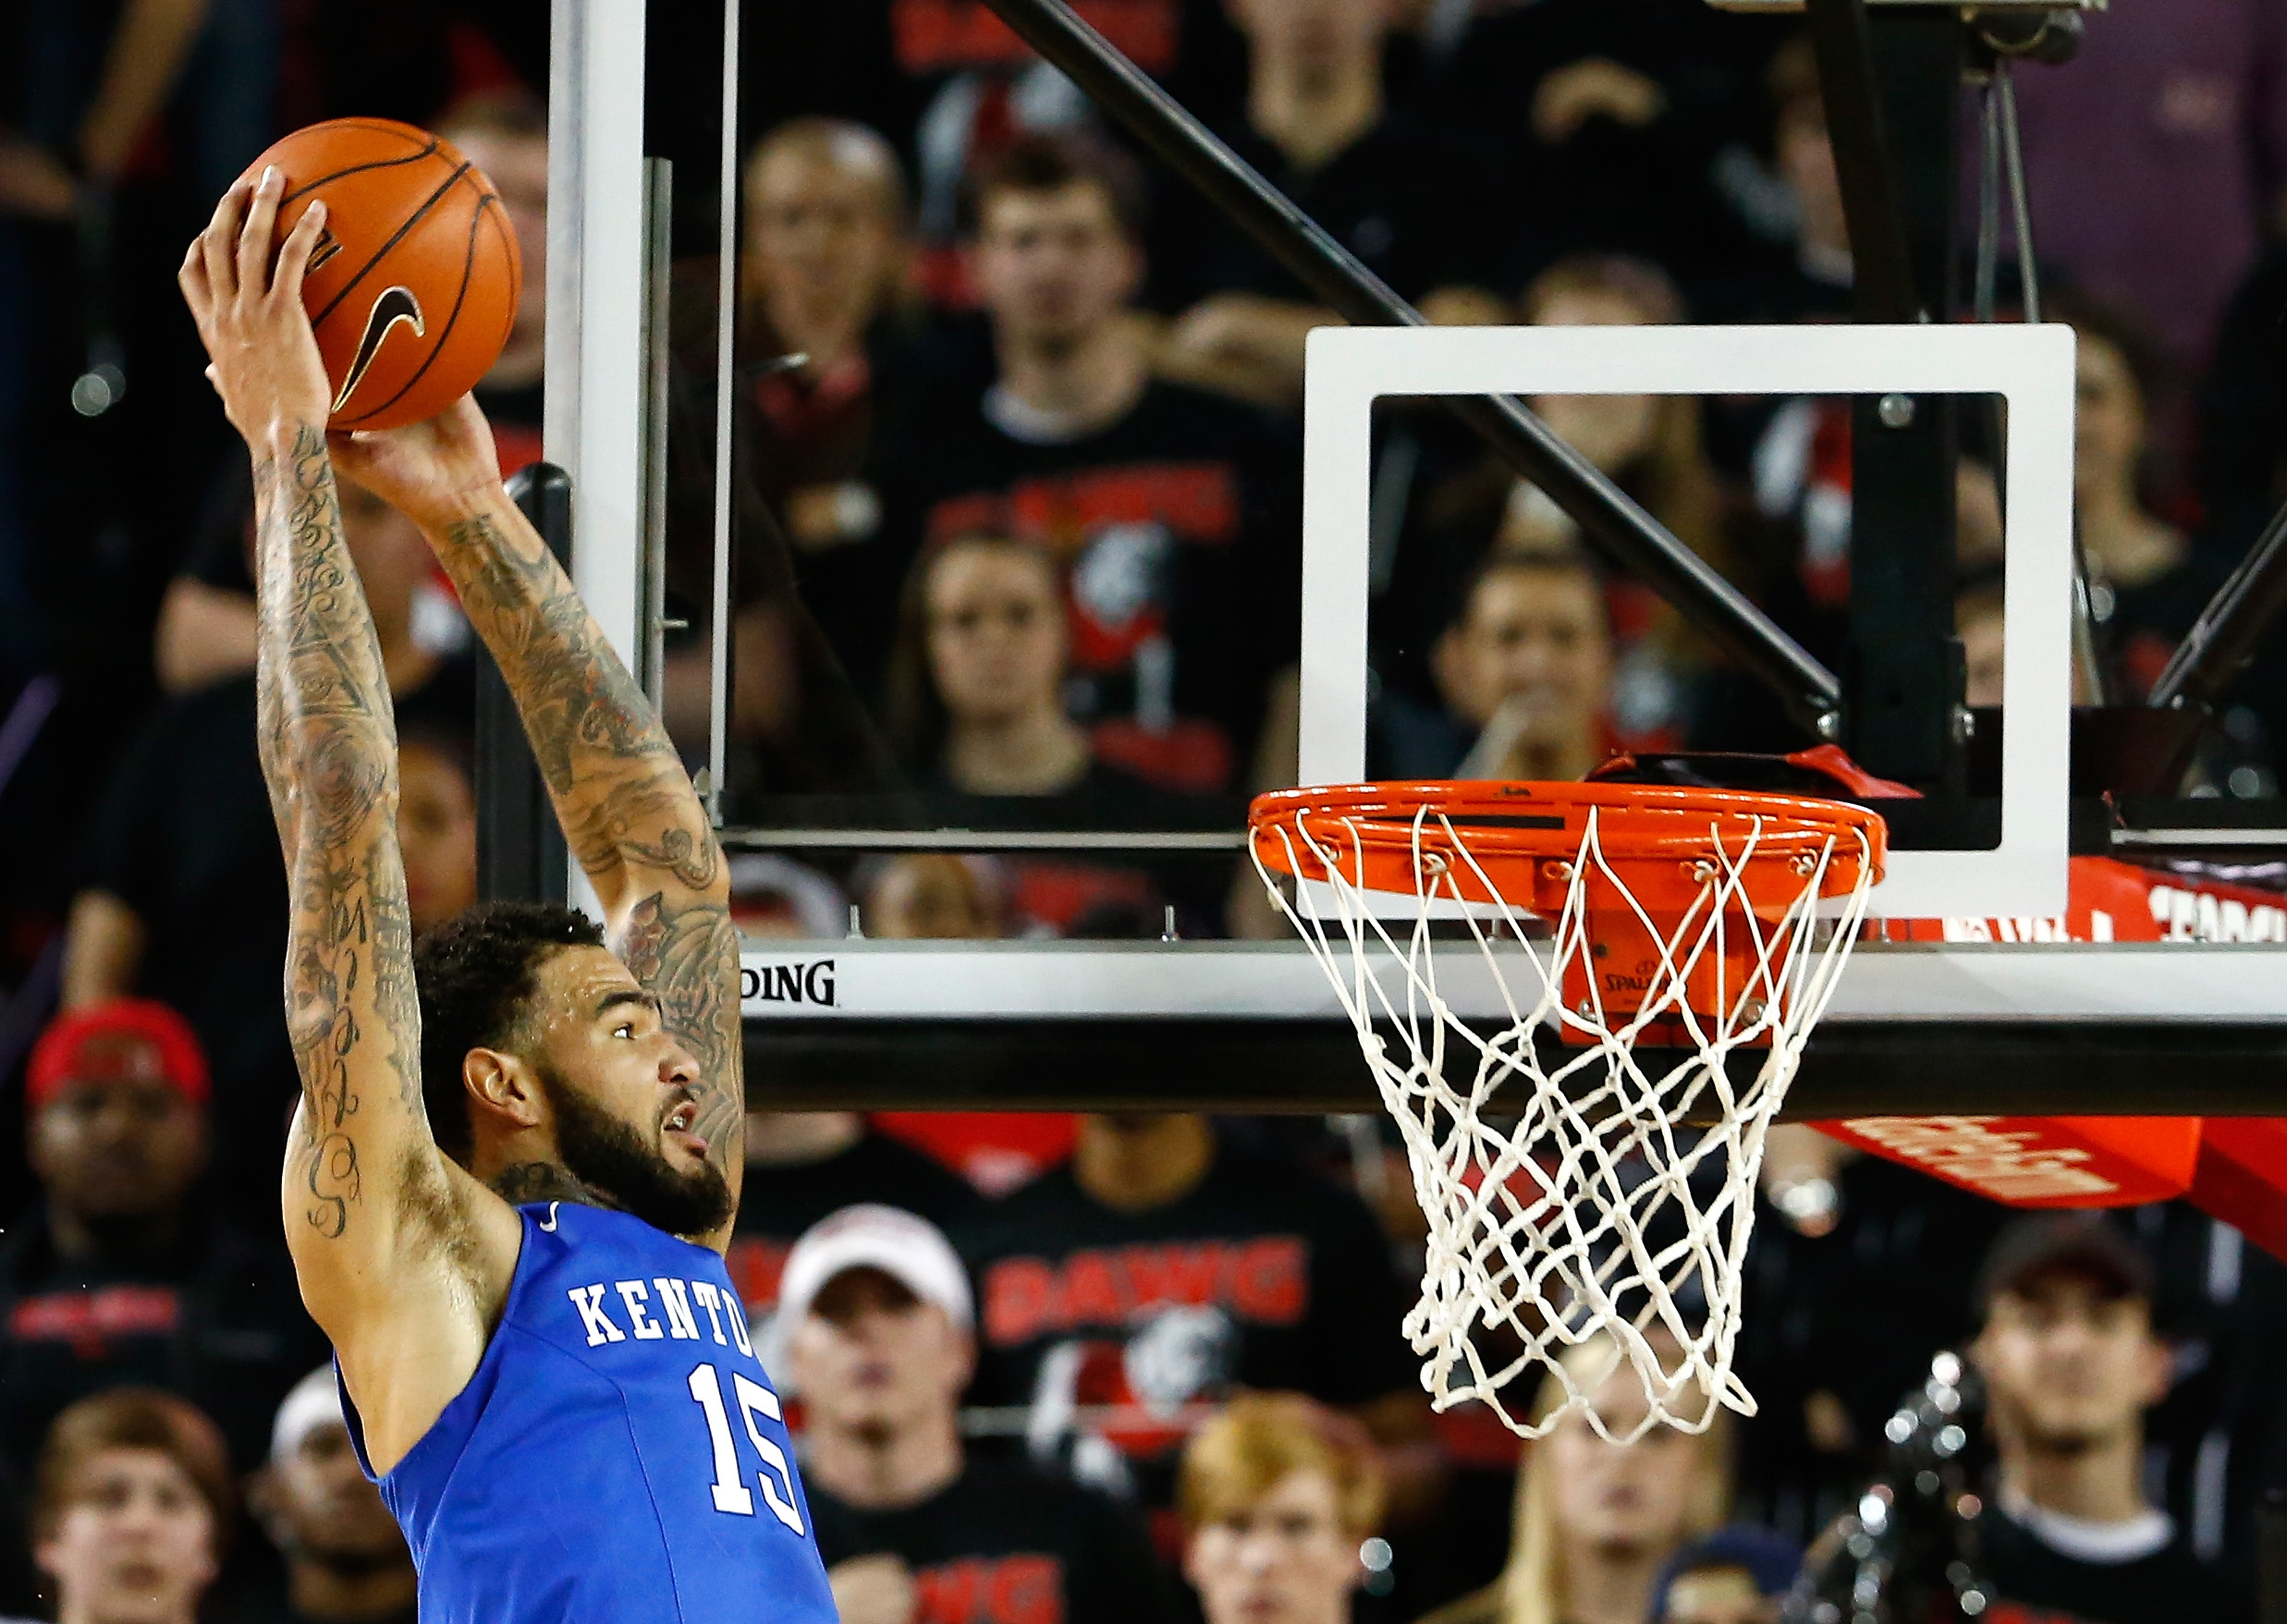 Kentucky vs. Georgia final score: Wildcats survive again, remain undefeated